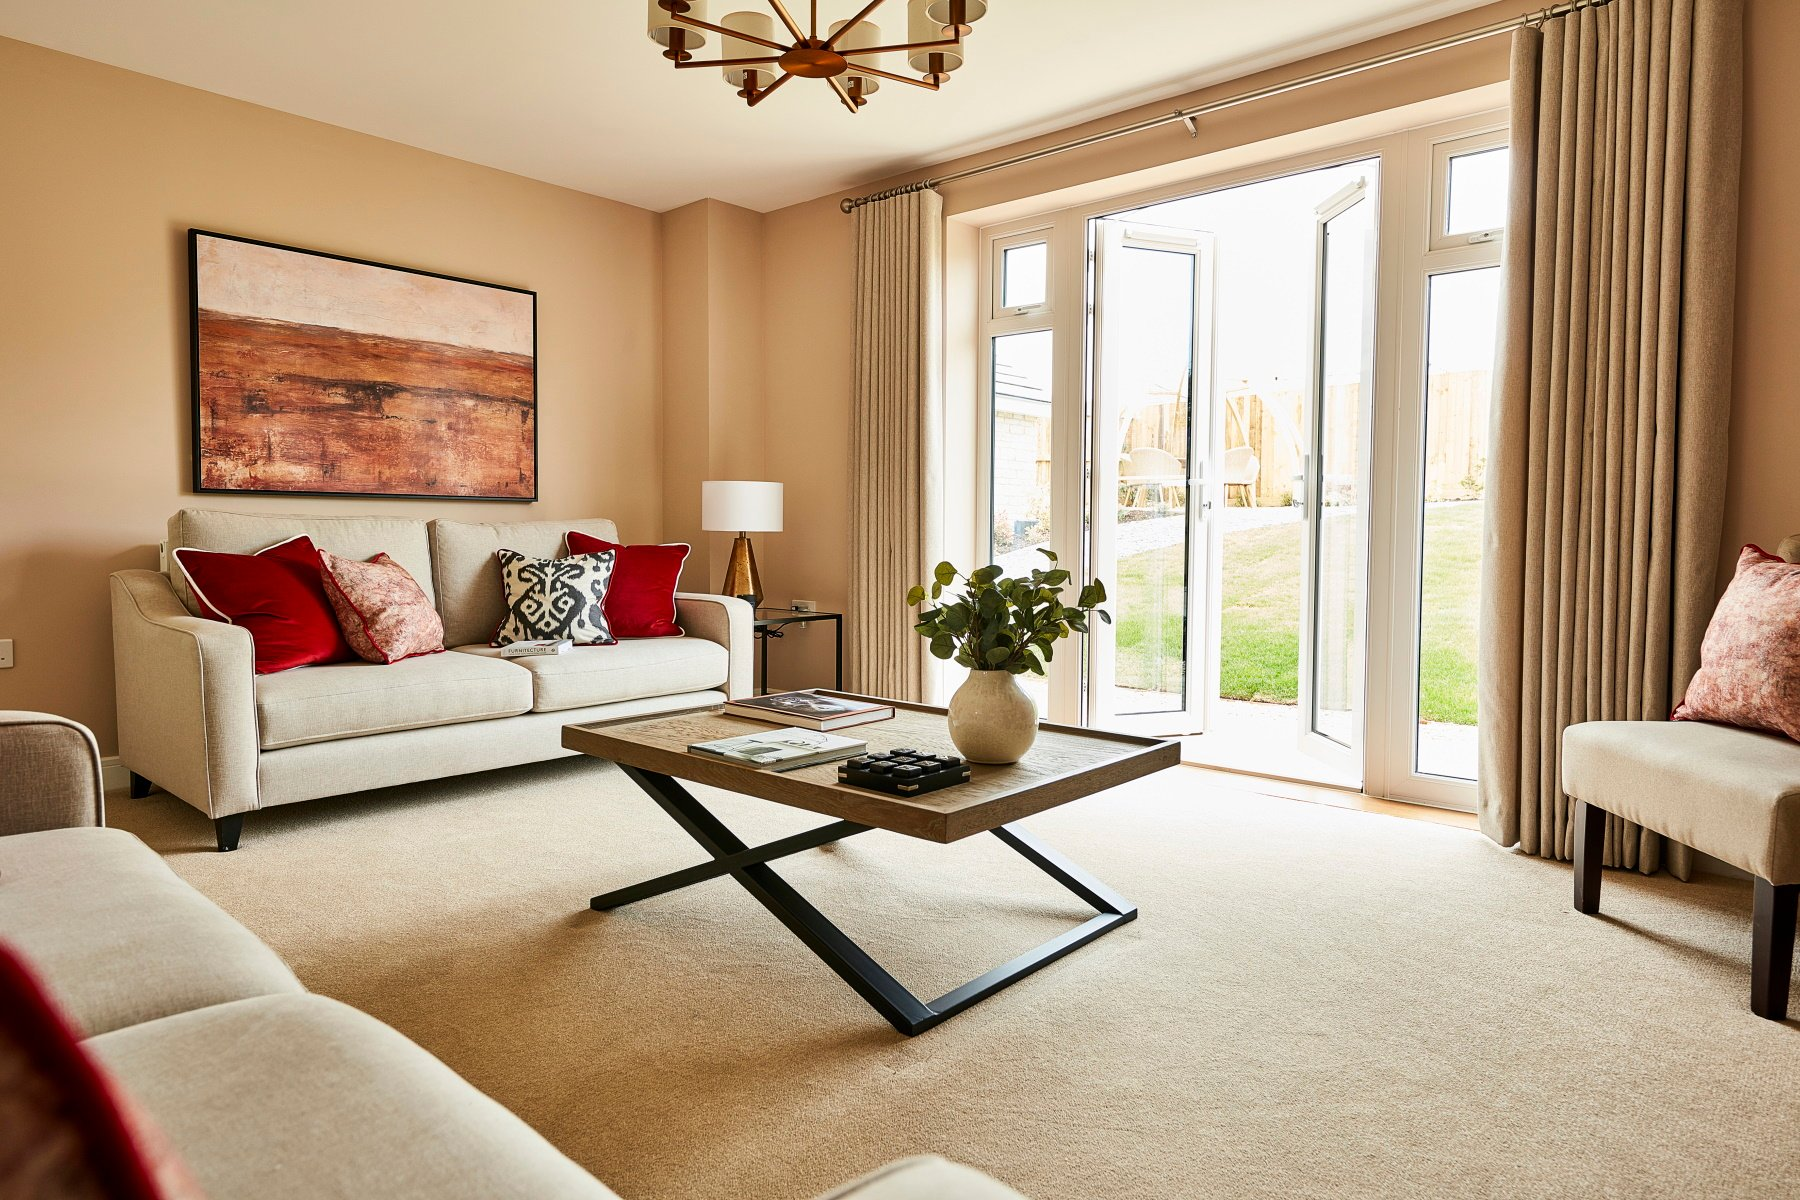 TW Exeter - Cranbrook - Marford example living room 2